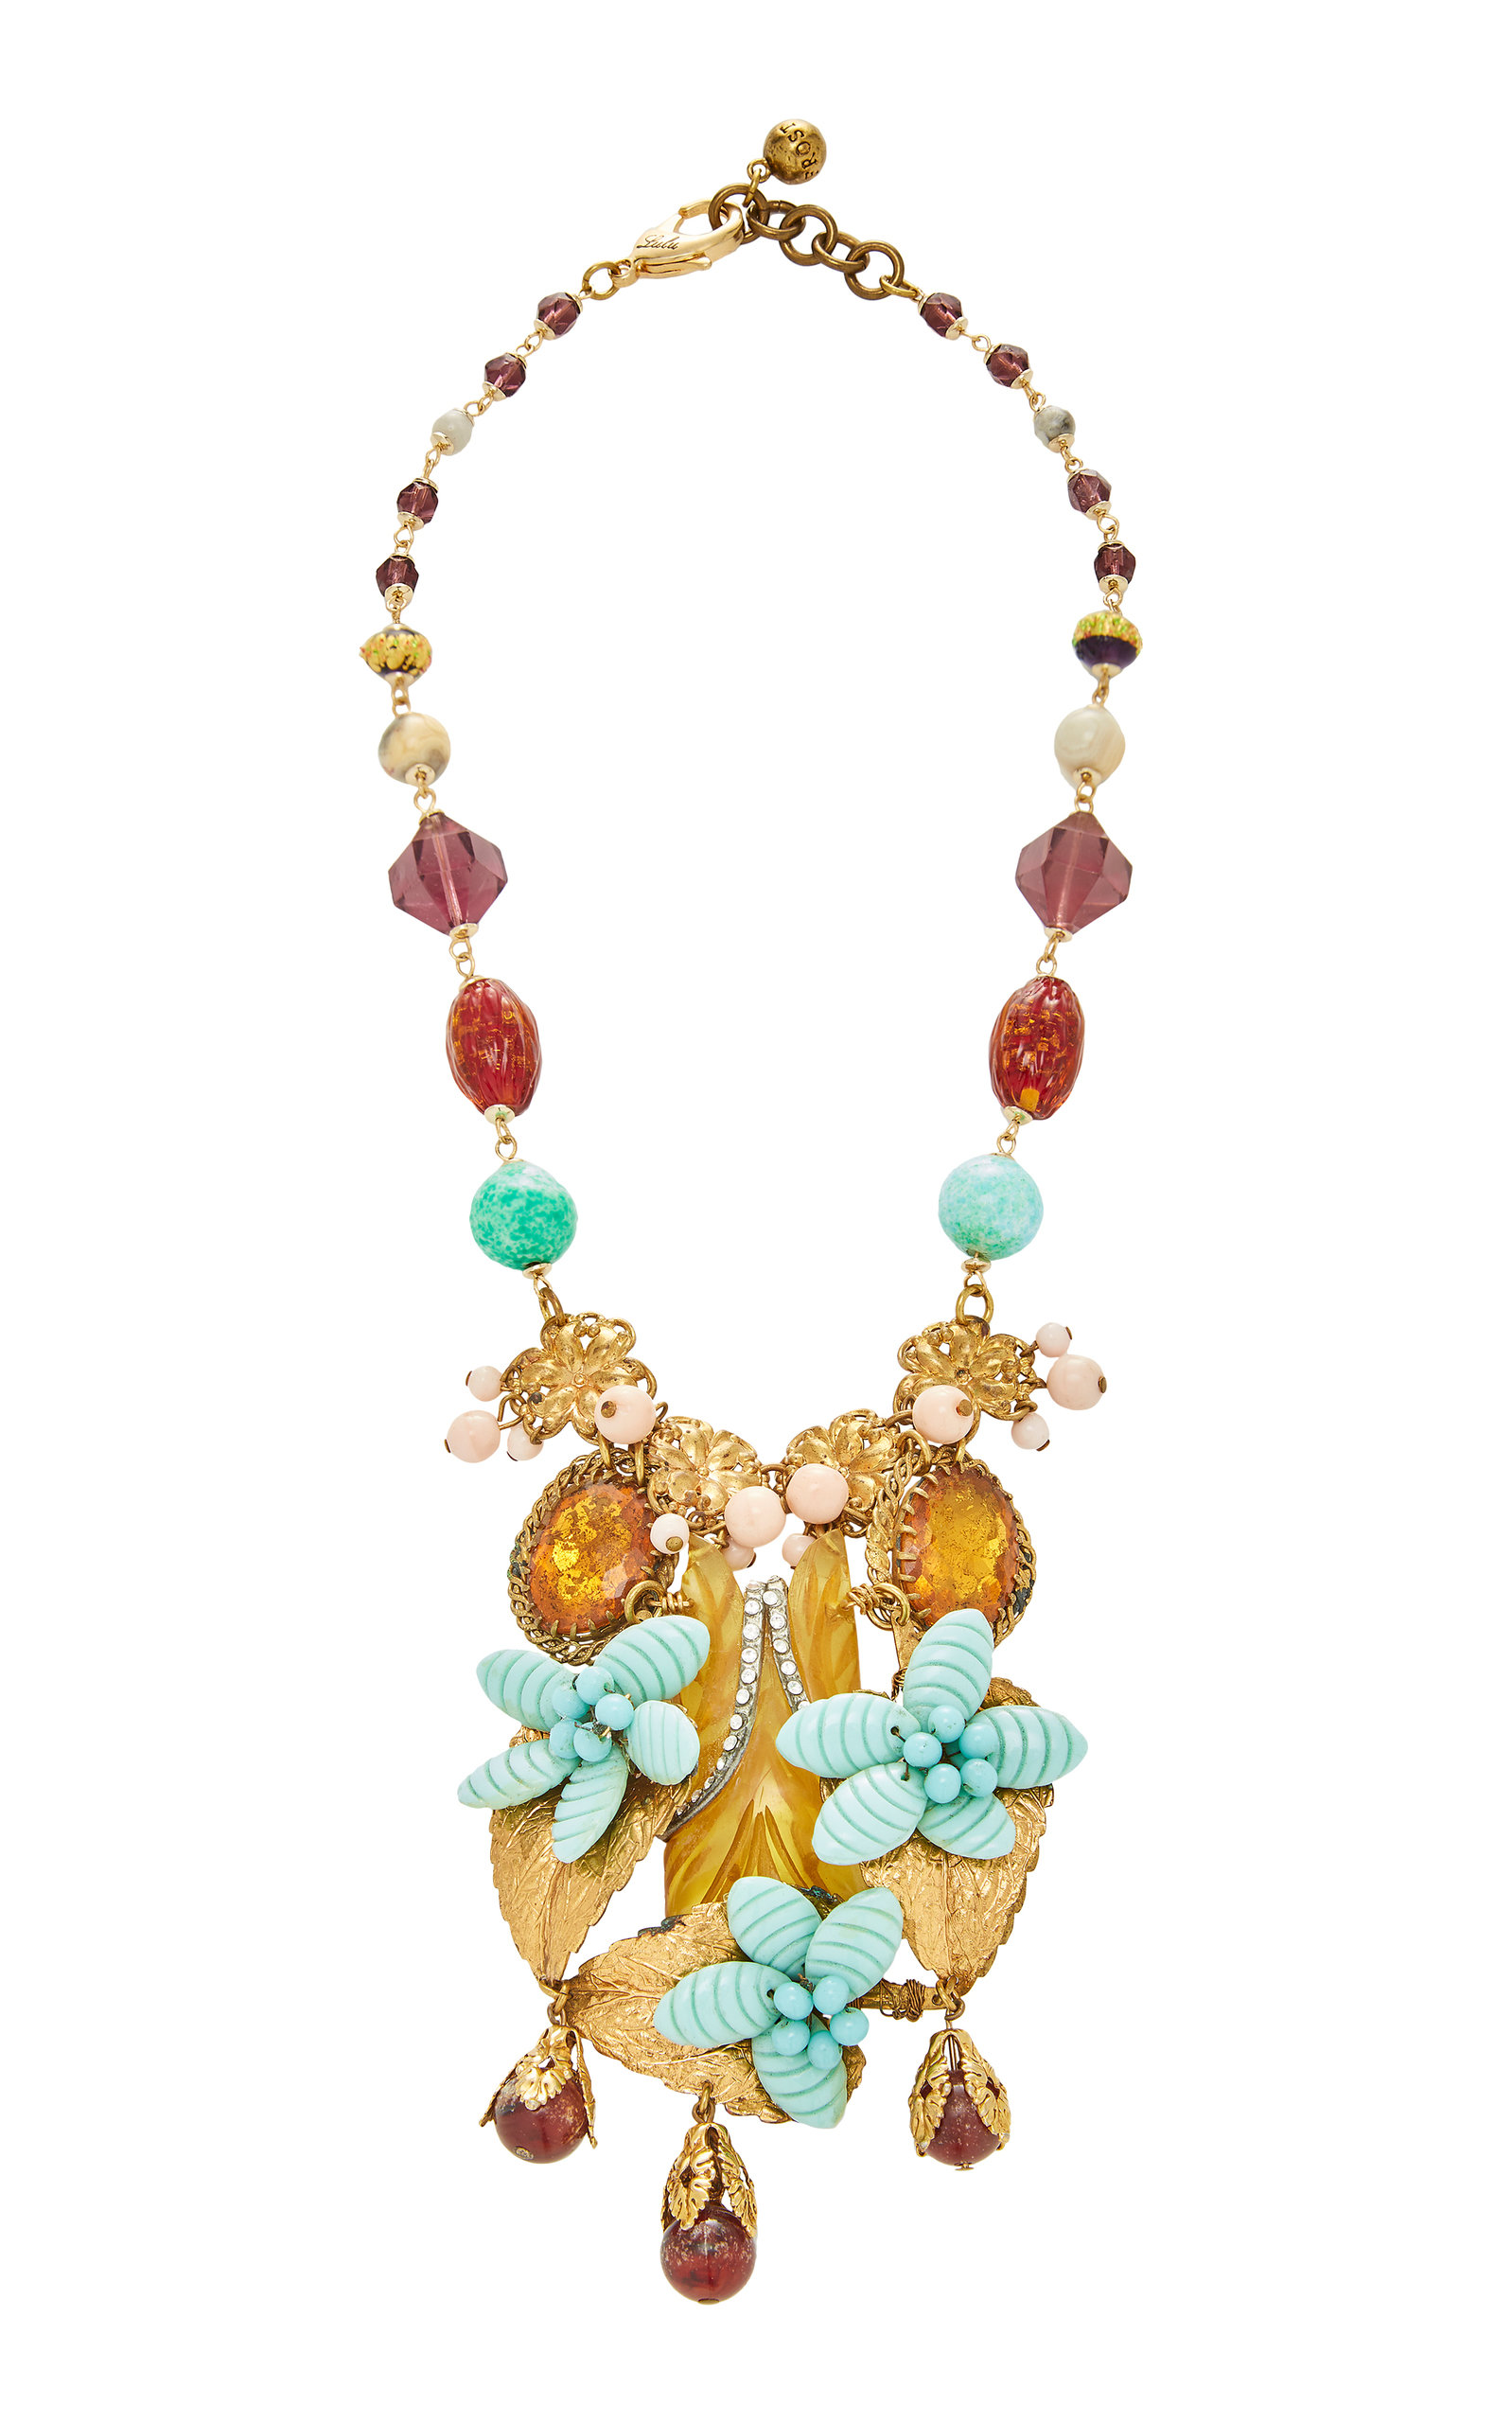 LULU FROST ONE-OF-A-KIND GOLD FOILED GLASS NECKLACE